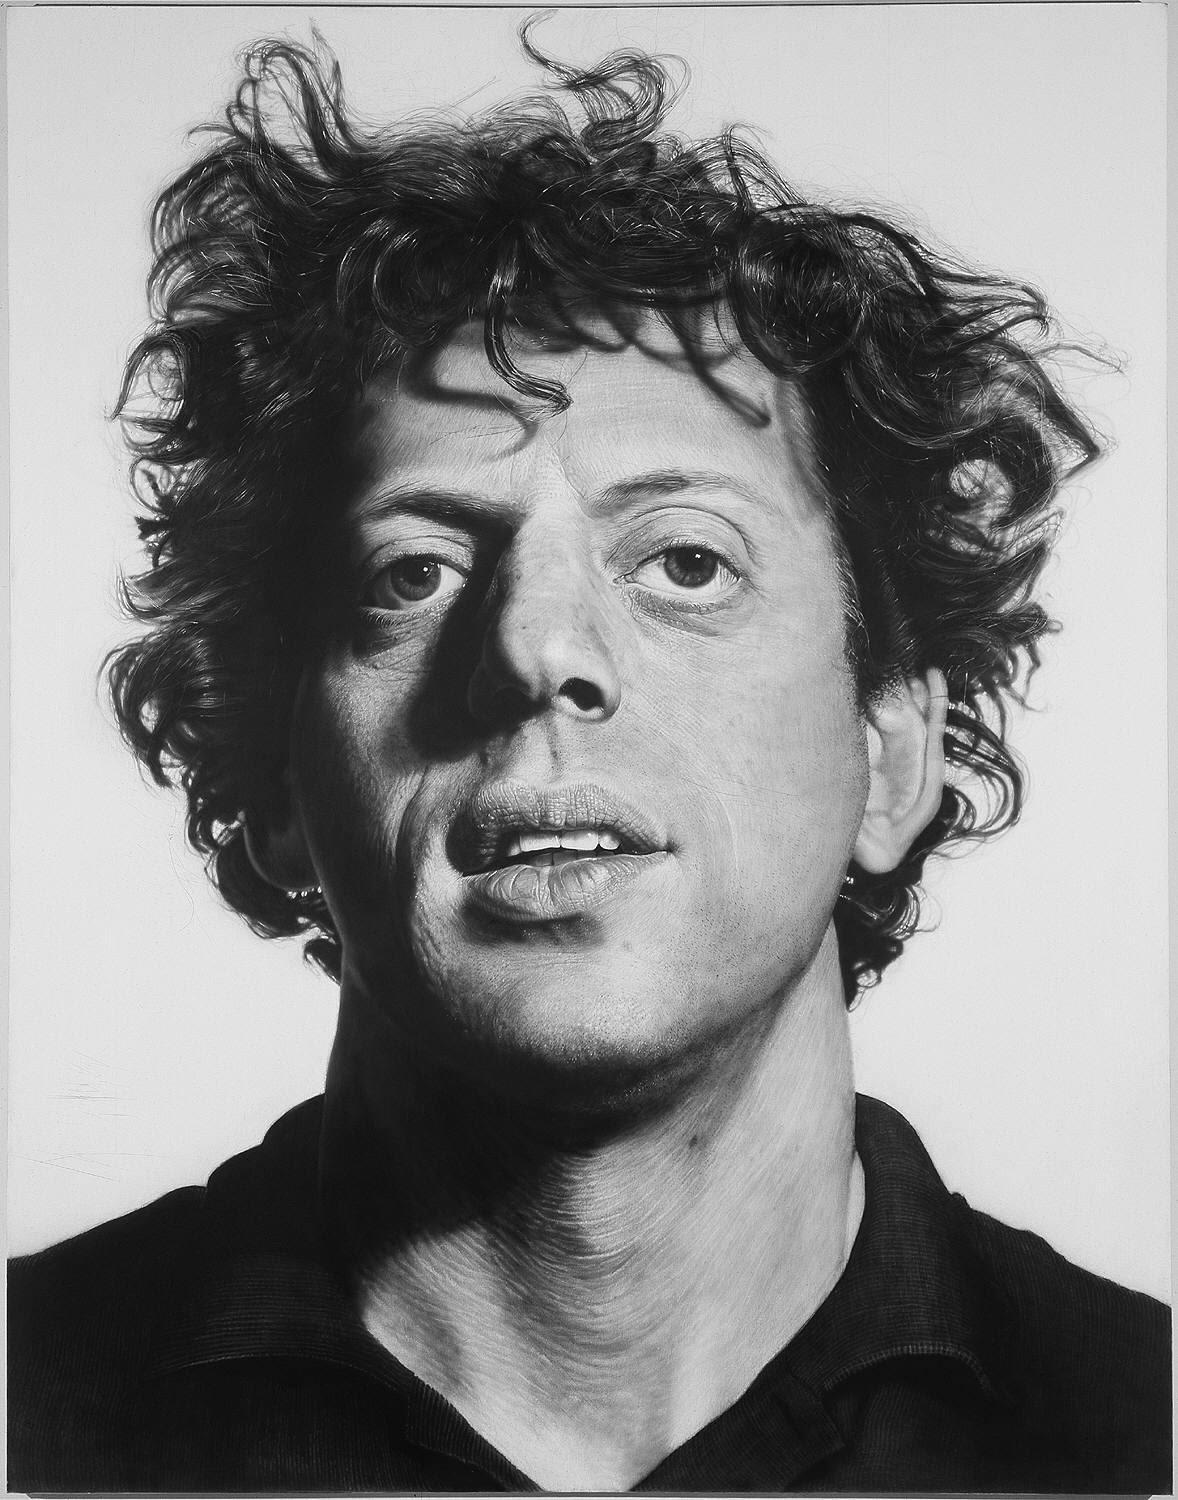 biography of the american photorealist painter chuck close Chuck close self portrait chuck close is an american painter and photographer who first achieved fame as a photorealist how to do a self portrait in the style of chuck close - color in color schemes.